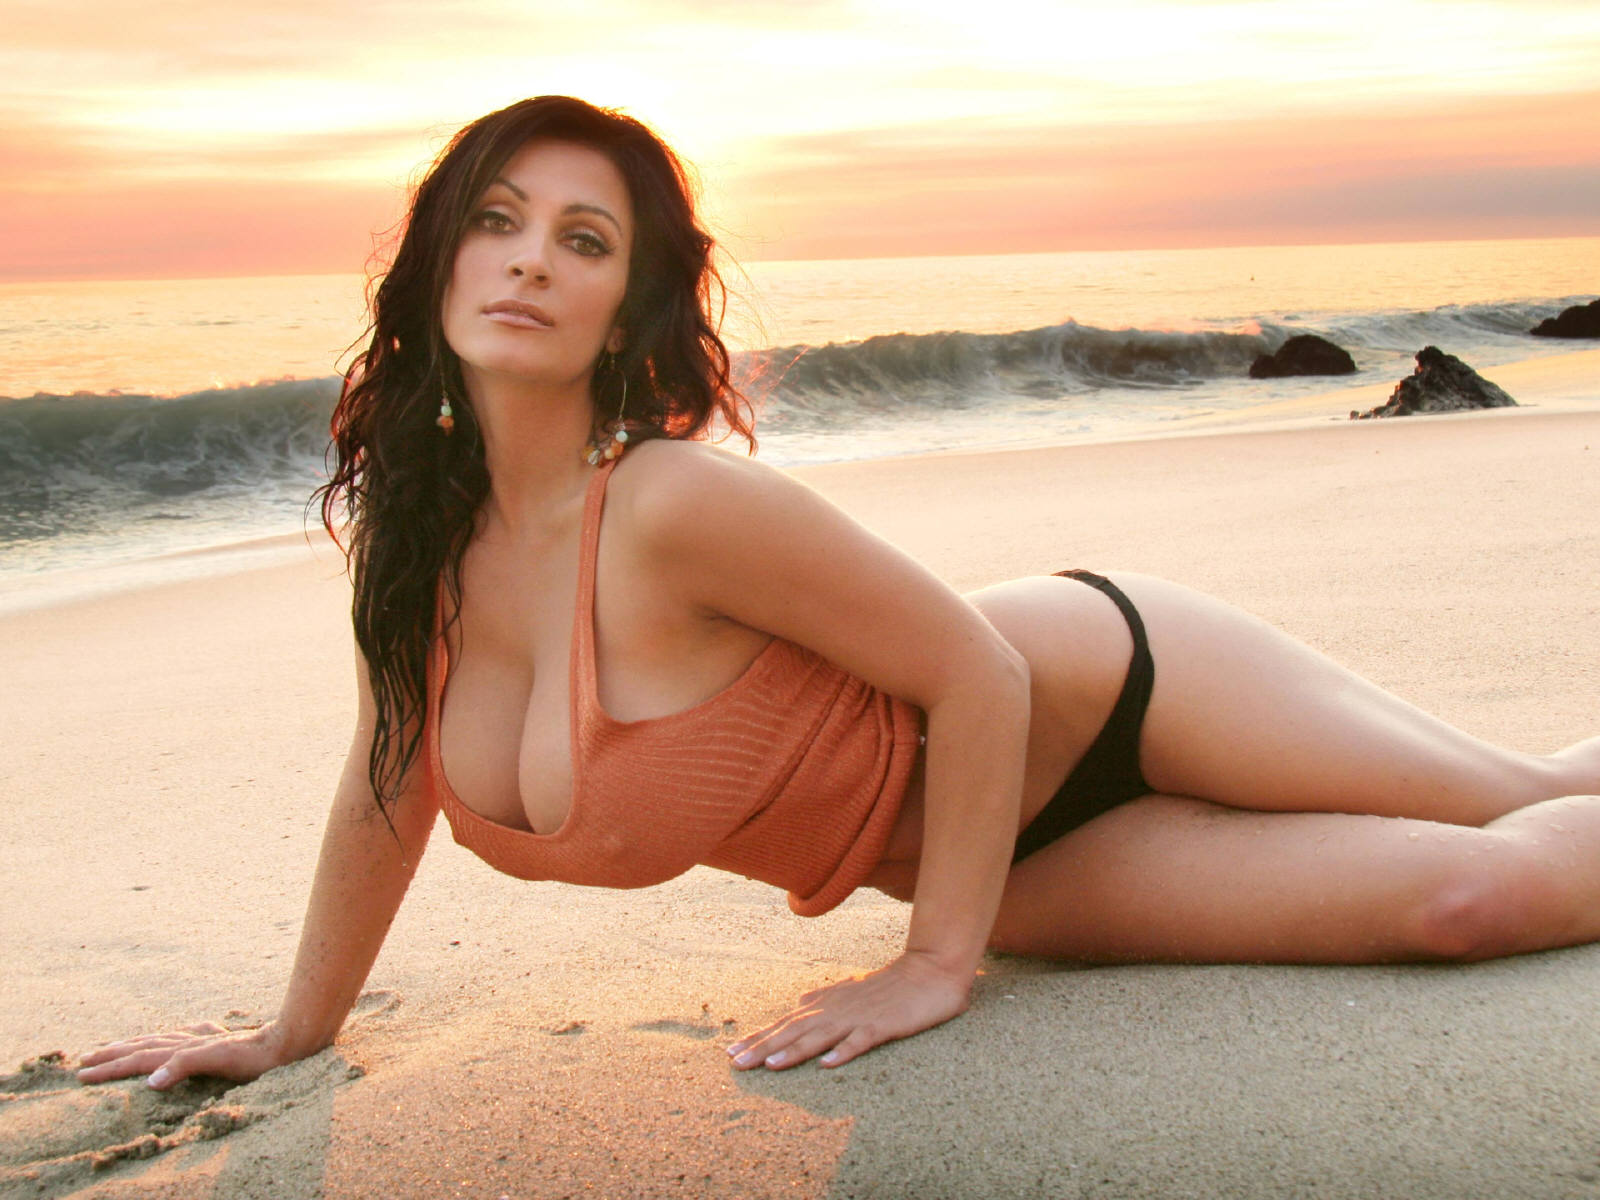 free non watermarked denise milani wallpapers at fullwalls blogspot